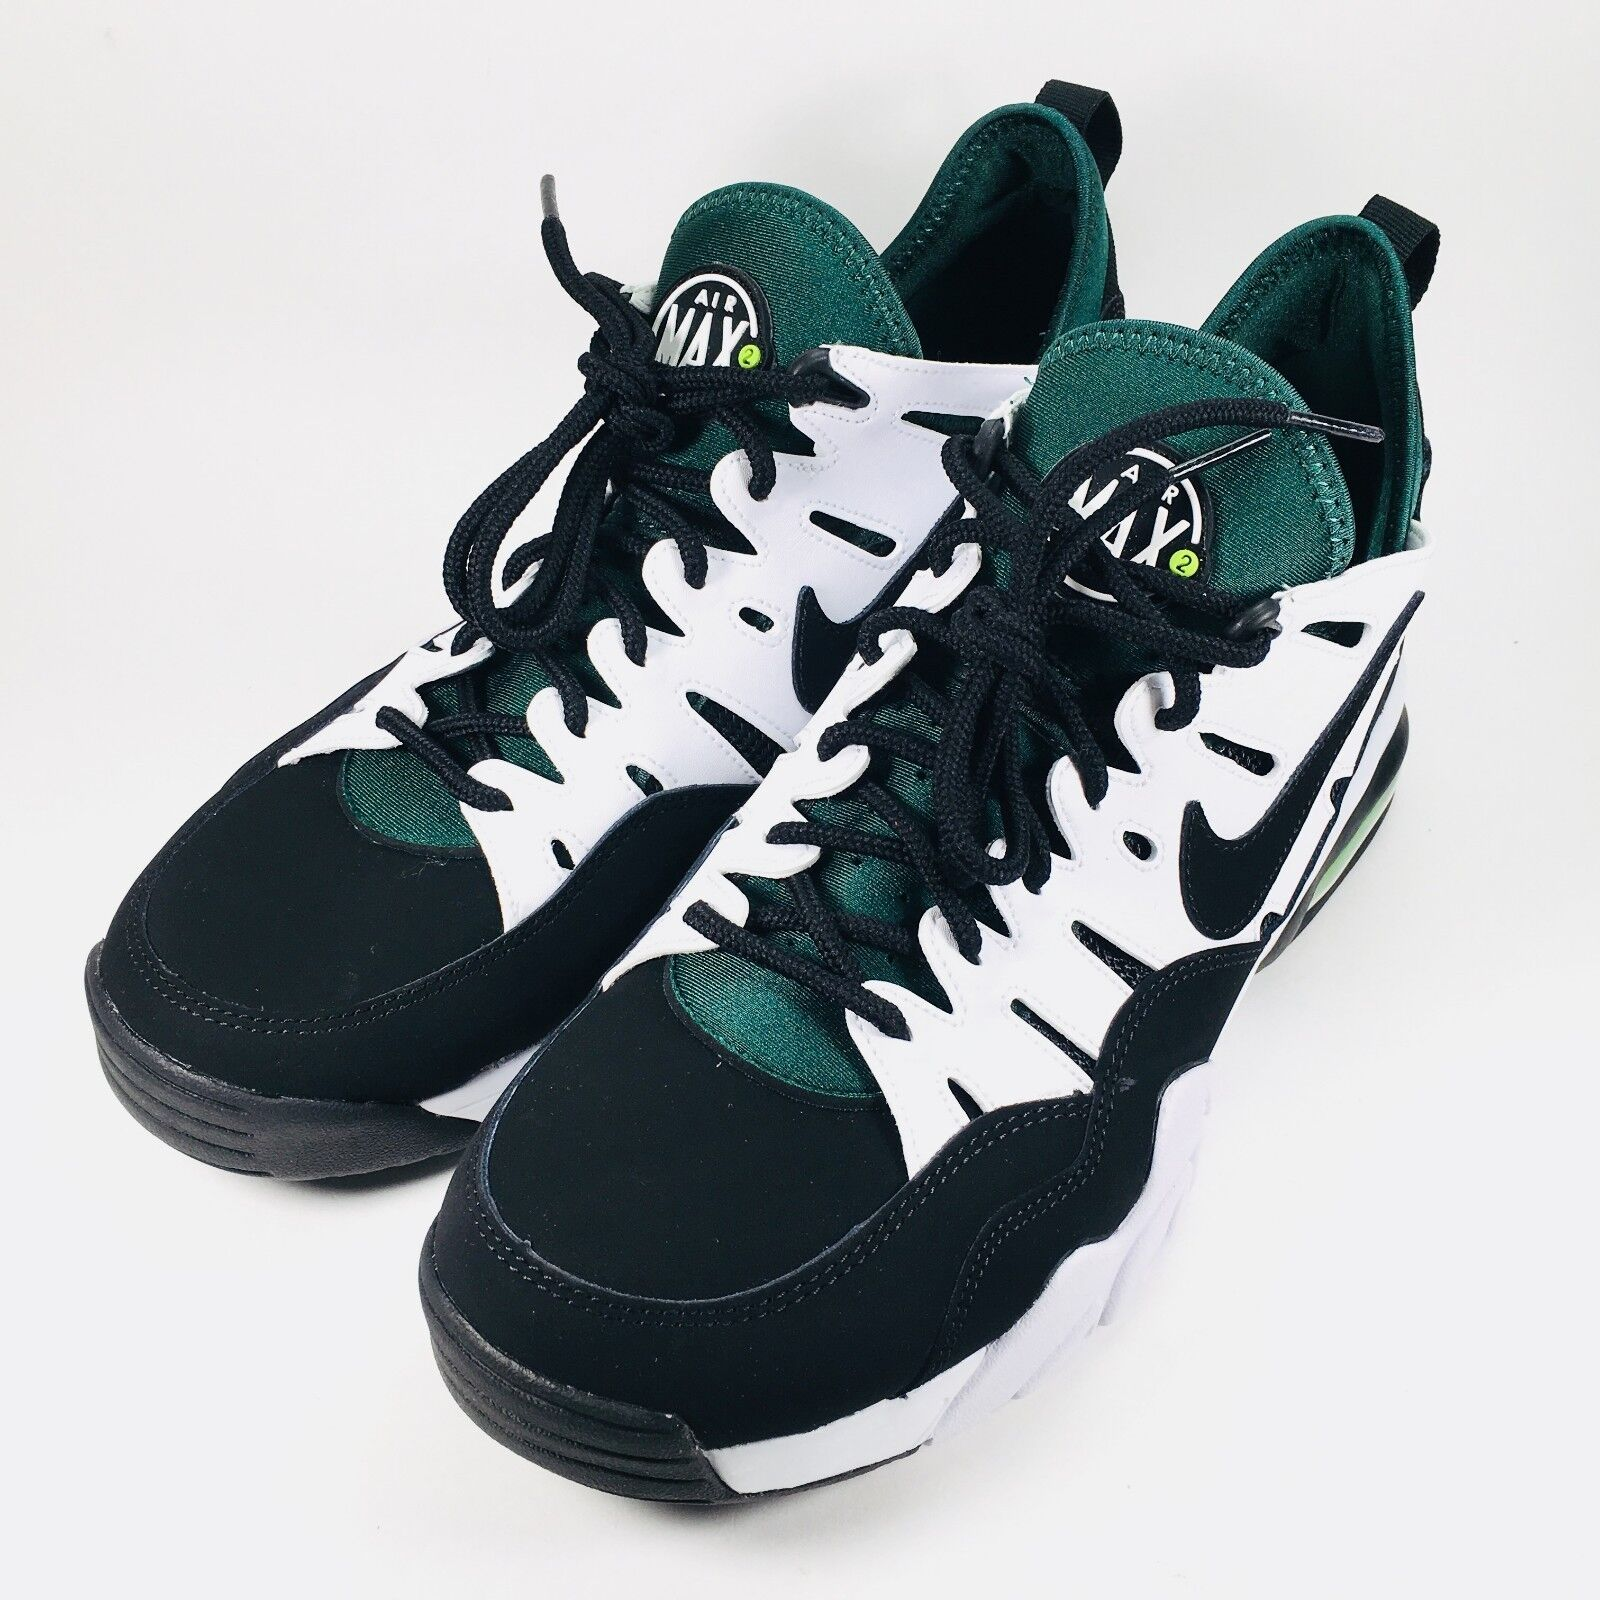 Nike Air Trainer Max 94 Low Mens Size 10 Black Green White Dark Pine 880995 001